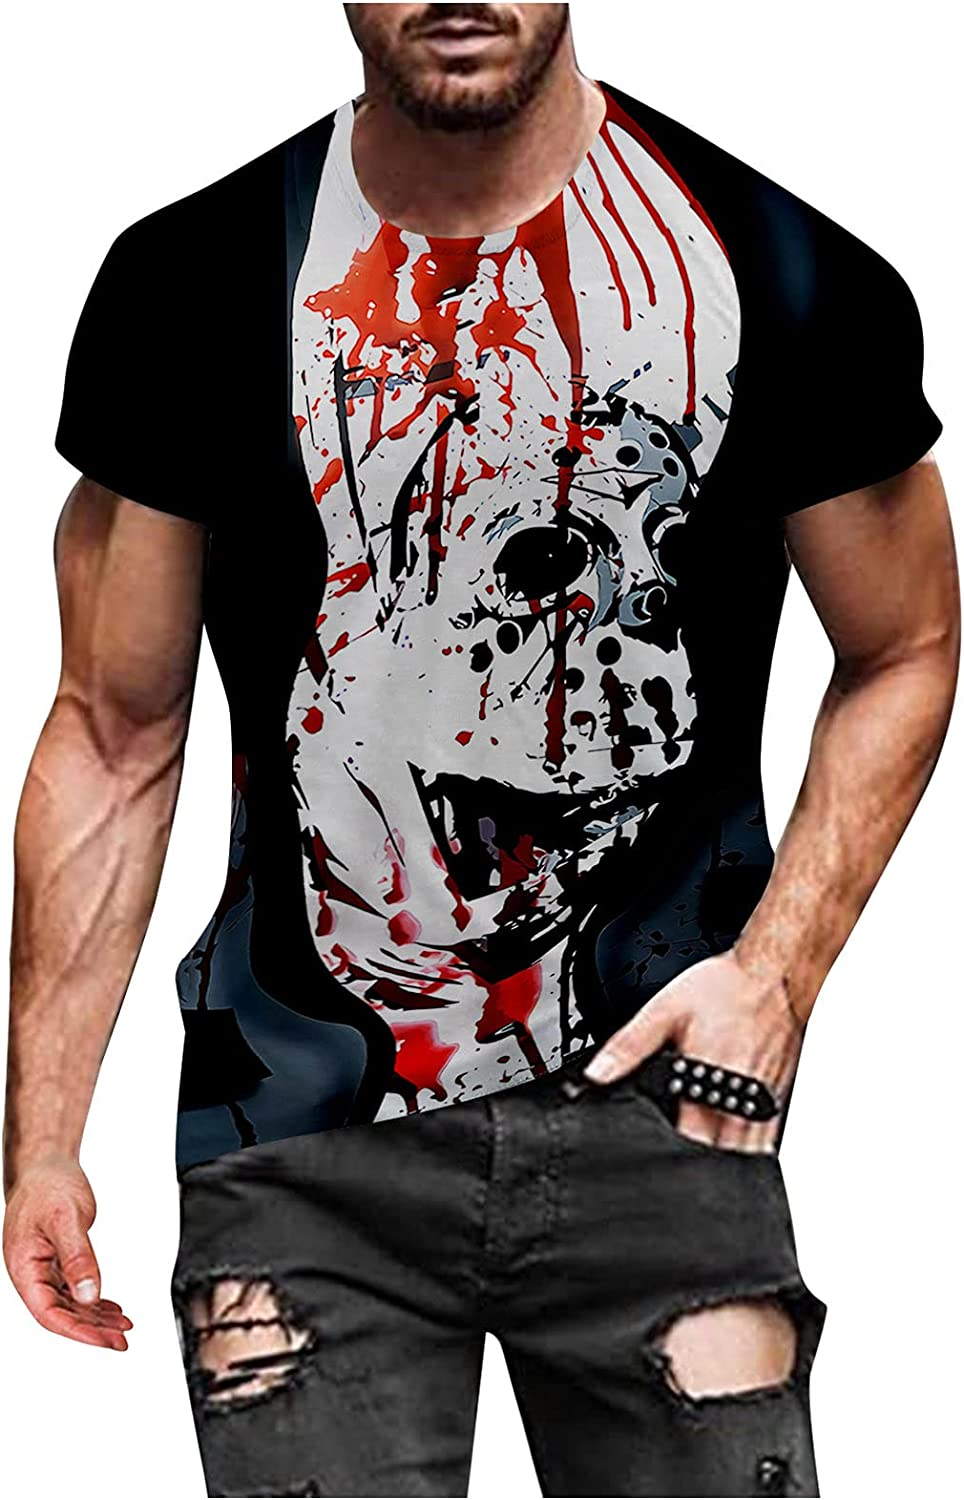 Burband Mens Halloween Shirts Pumpkin Skull Funny 3D Printed Gothic Tees Shirts Short Sleeve Athletic Workout Muscle Tops